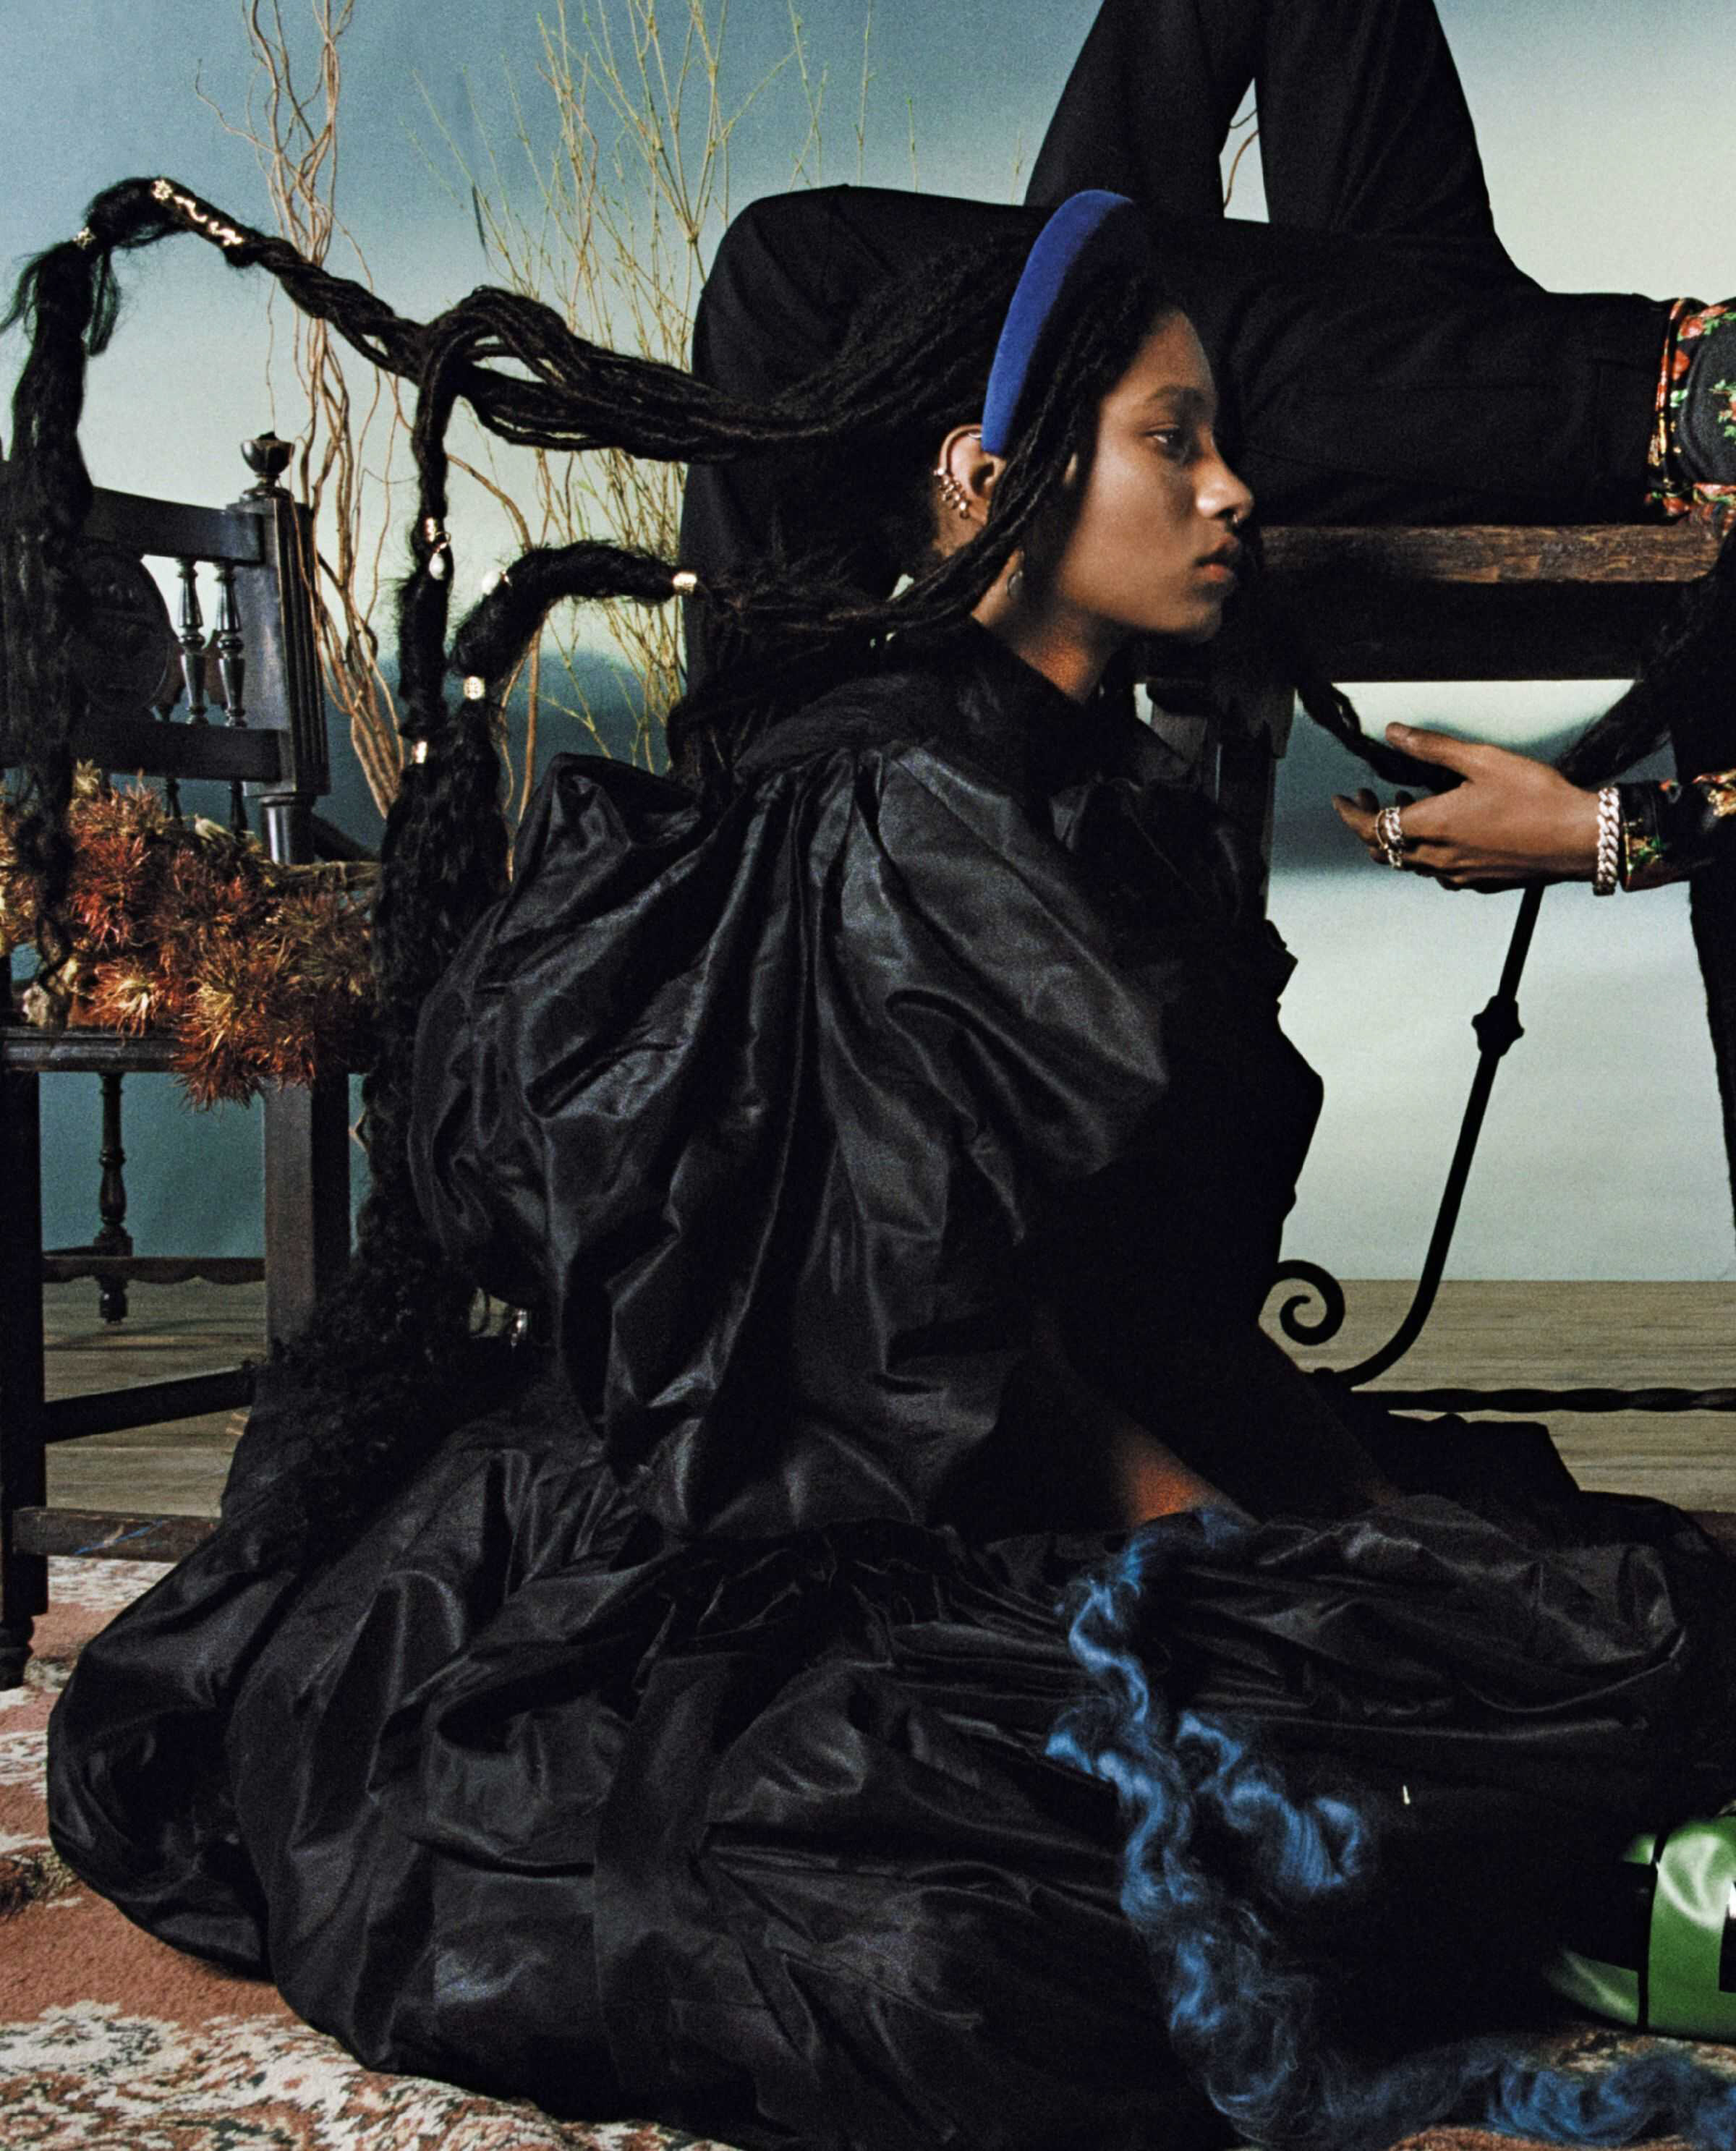 Jaden + Willow Smith Hugo Comte Vogue Italia Oct 2019 (13).jpg